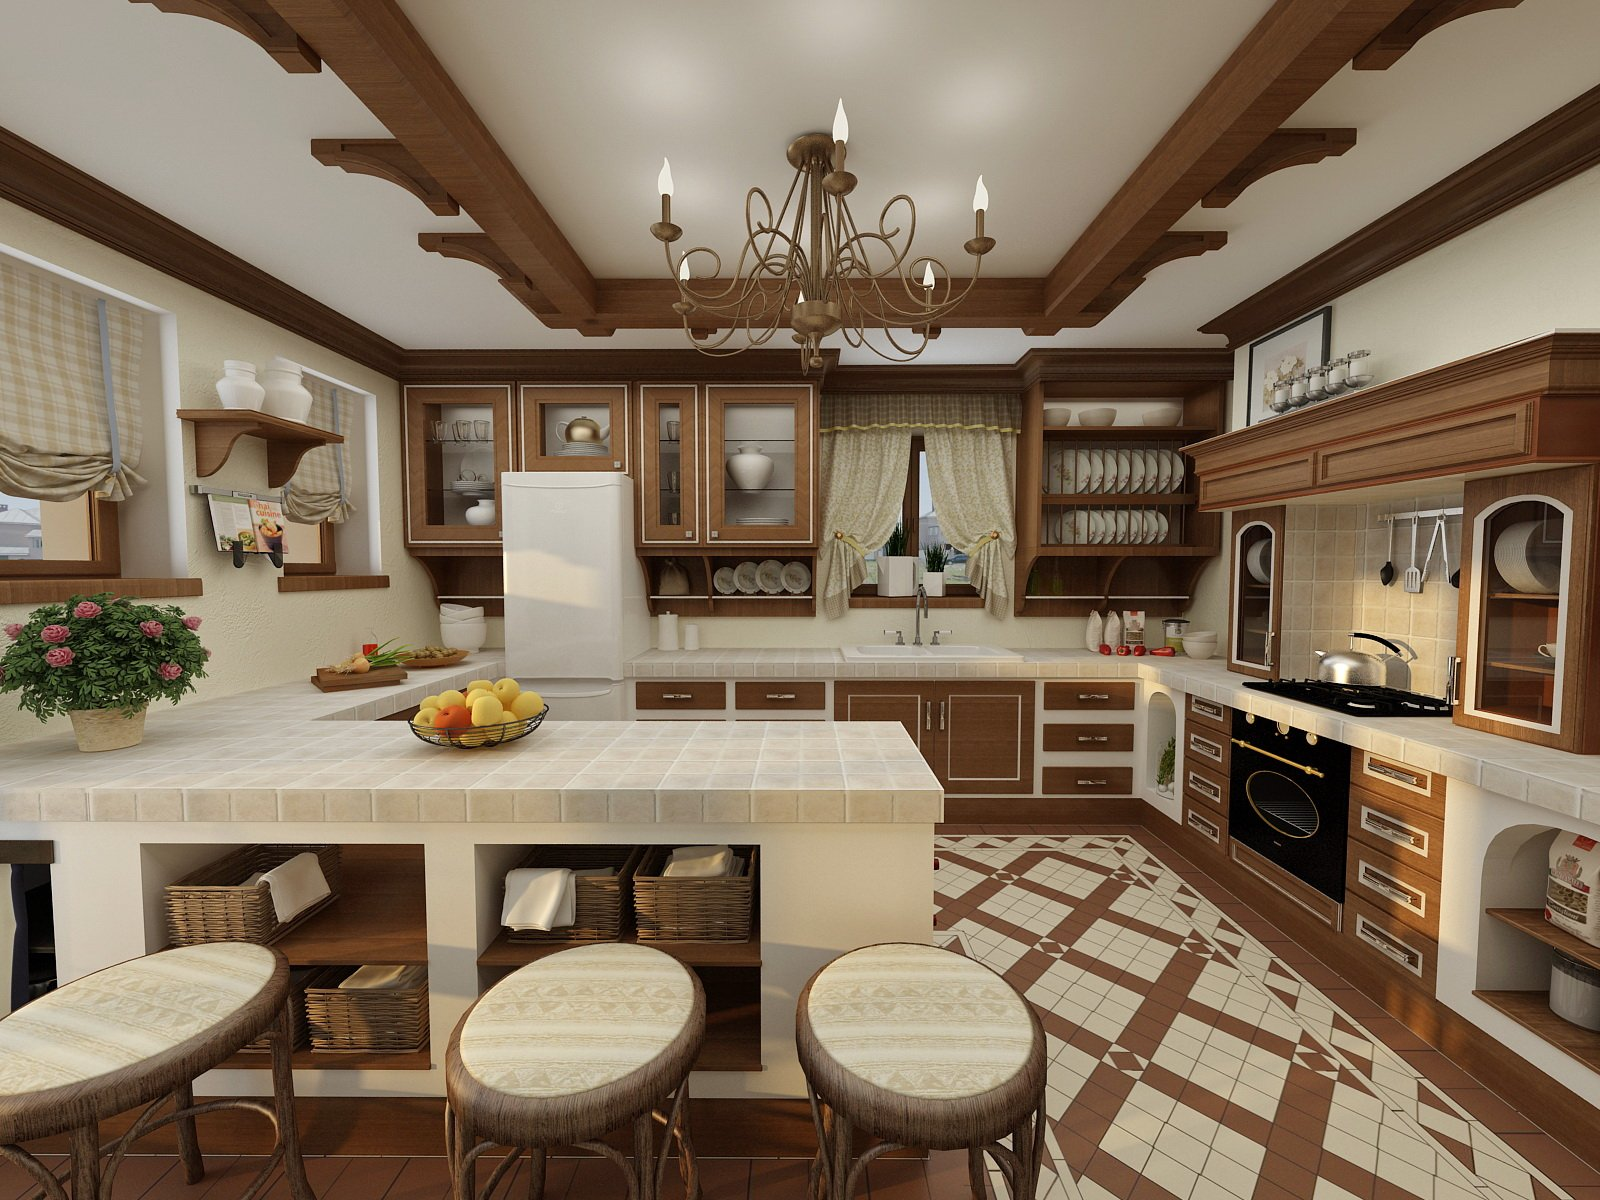 German Interior Design Style Overview and Examples. Nice ethnic fachwerk finishing if the white colored kitchen